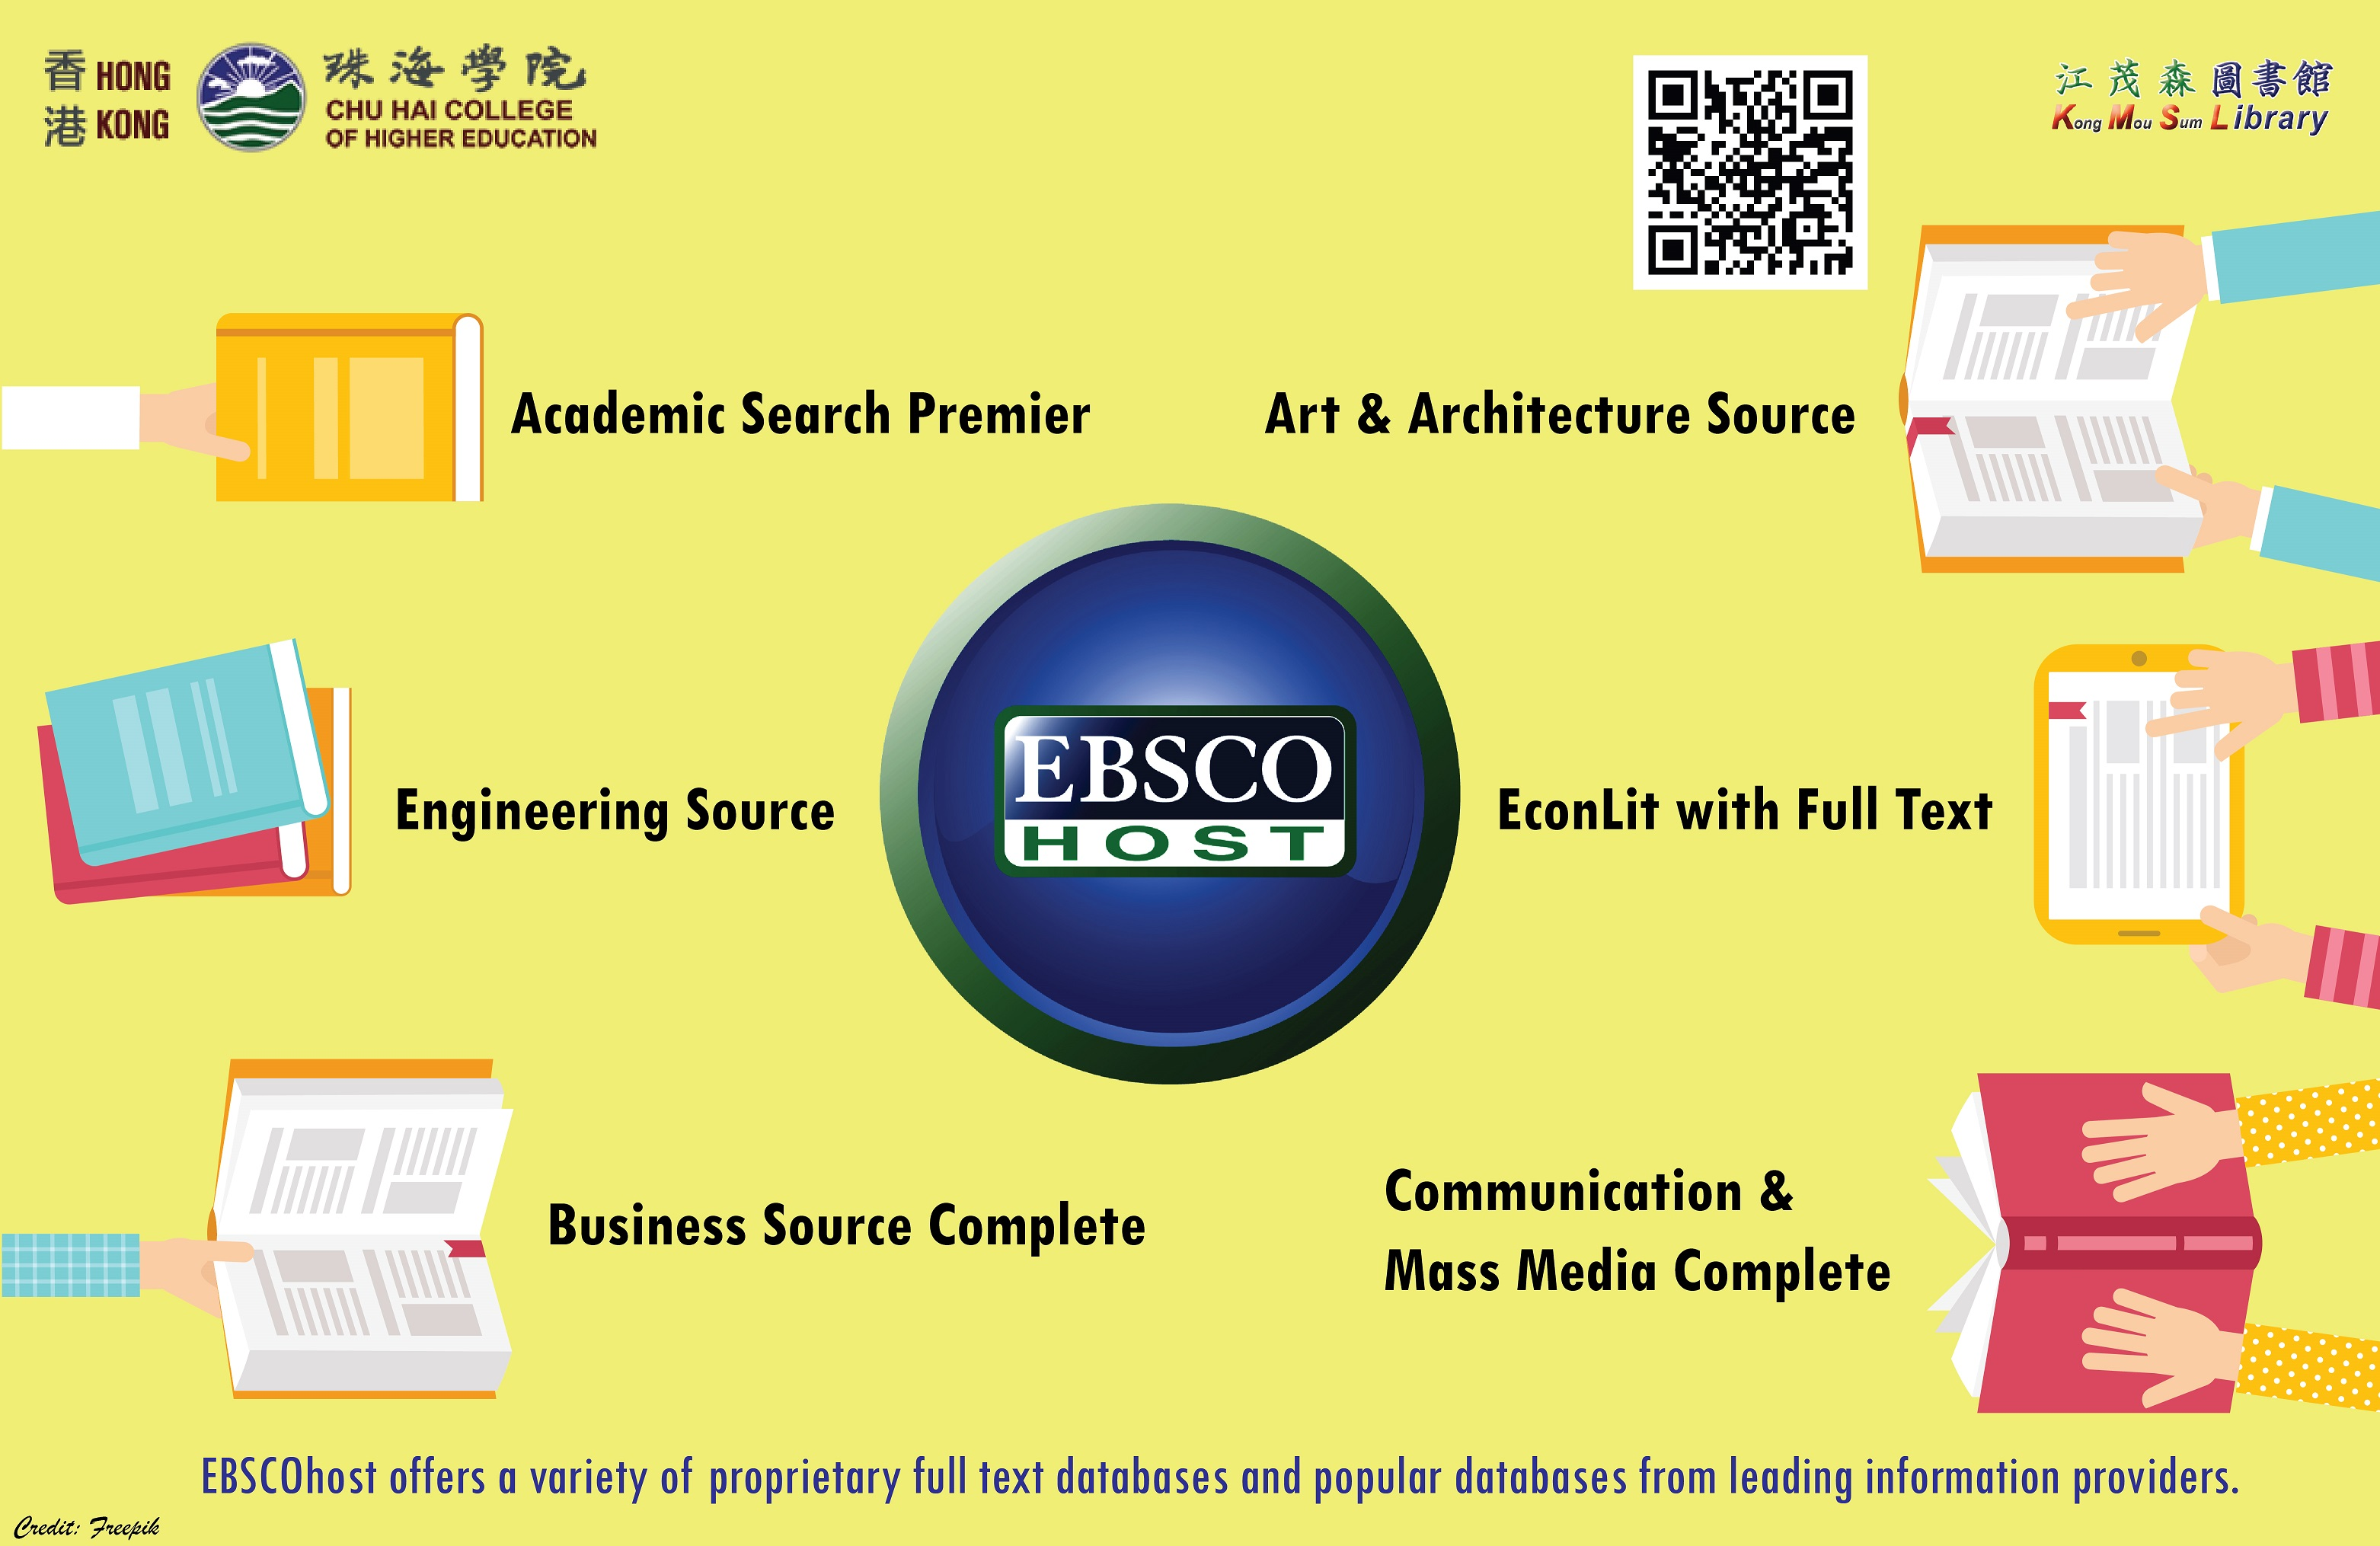 EBSCOHOST_202003